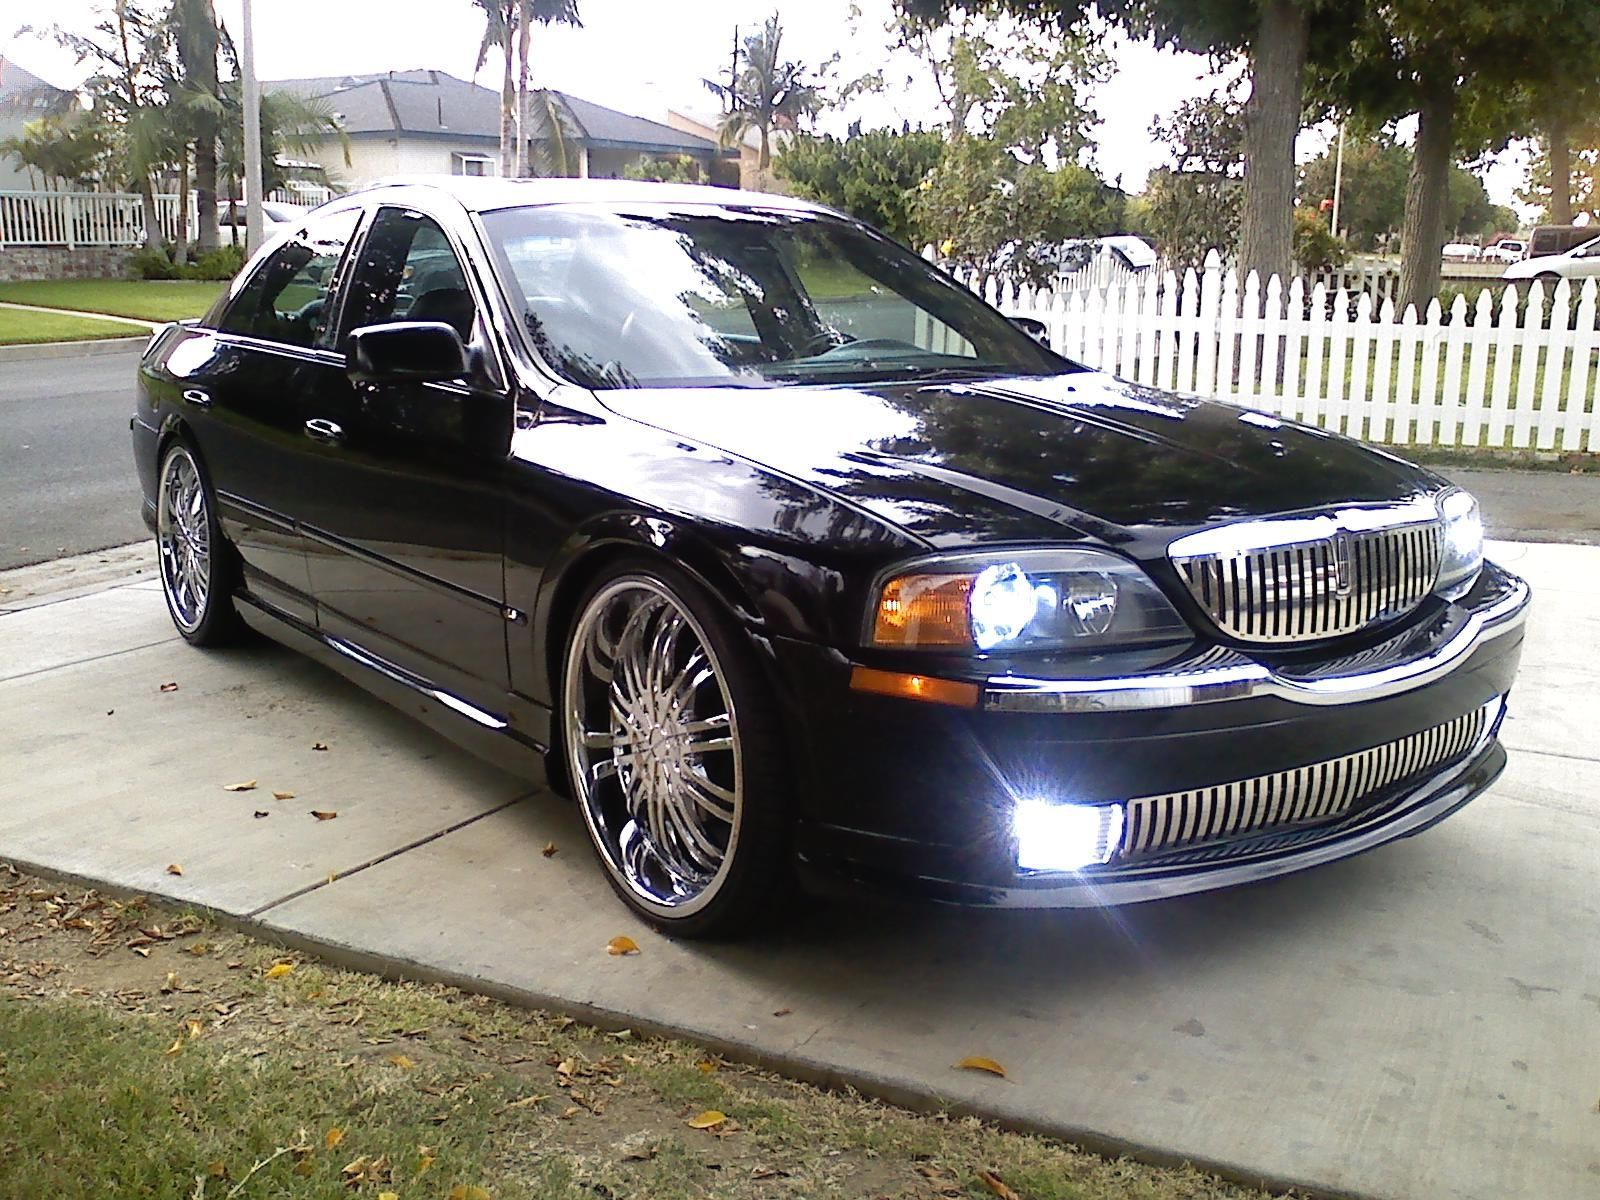 View another bolosdxt13 2001 lincoln ls post photo 8556263 of bolosdxt13 s 2001 lincoln